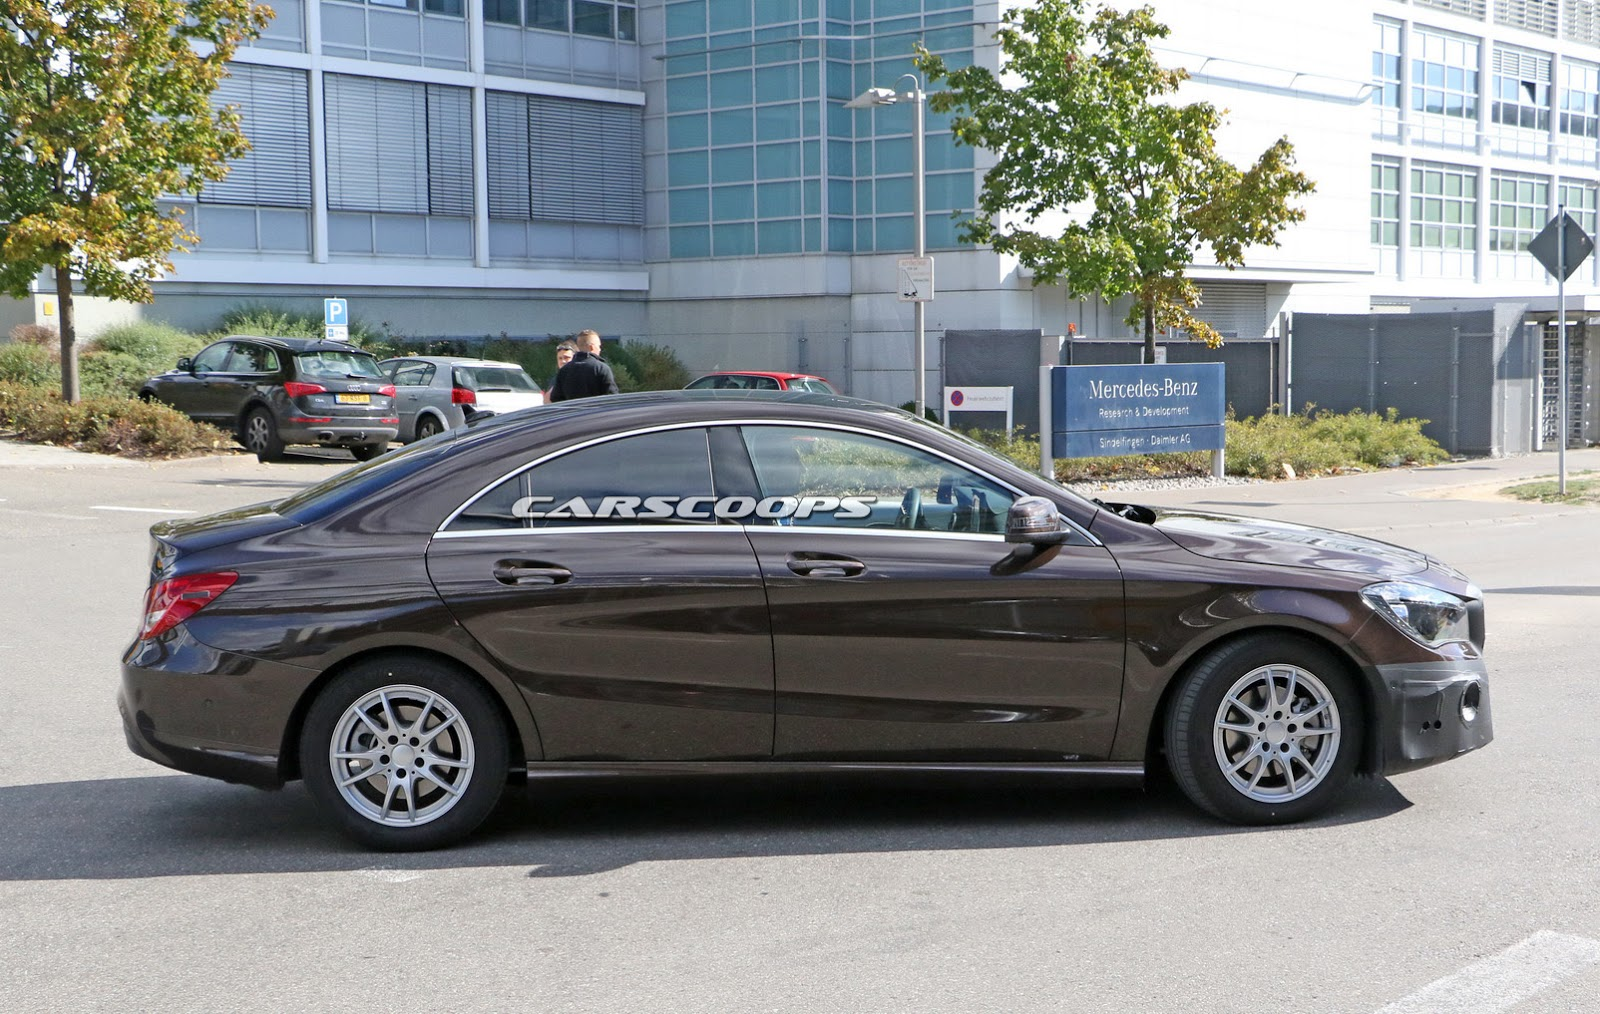 spied mercedes benz is giving its cla a facelift carscoops. Black Bedroom Furniture Sets. Home Design Ideas